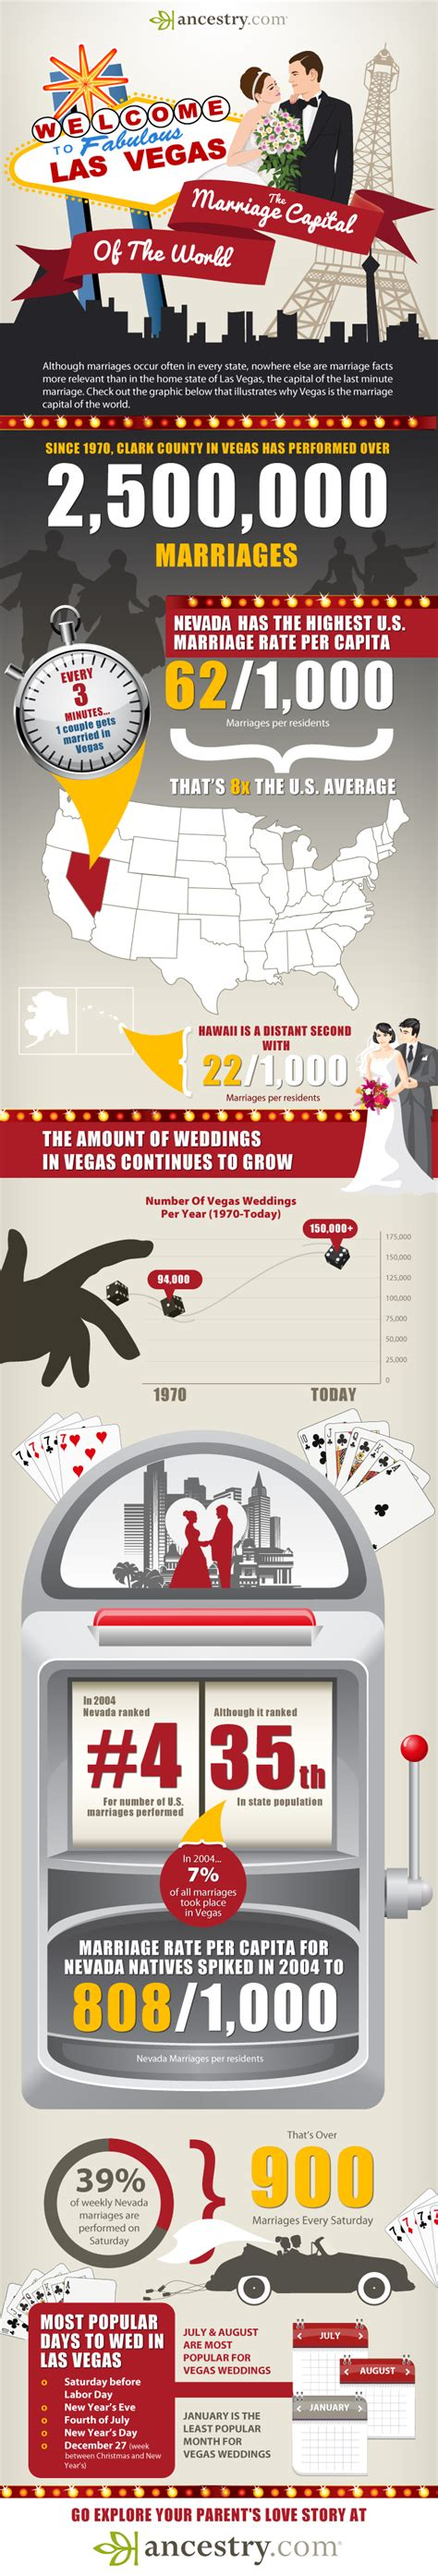 Las Vegas Marriage Records Free Las Vegas The Marriage Capital Of The World Ancestry